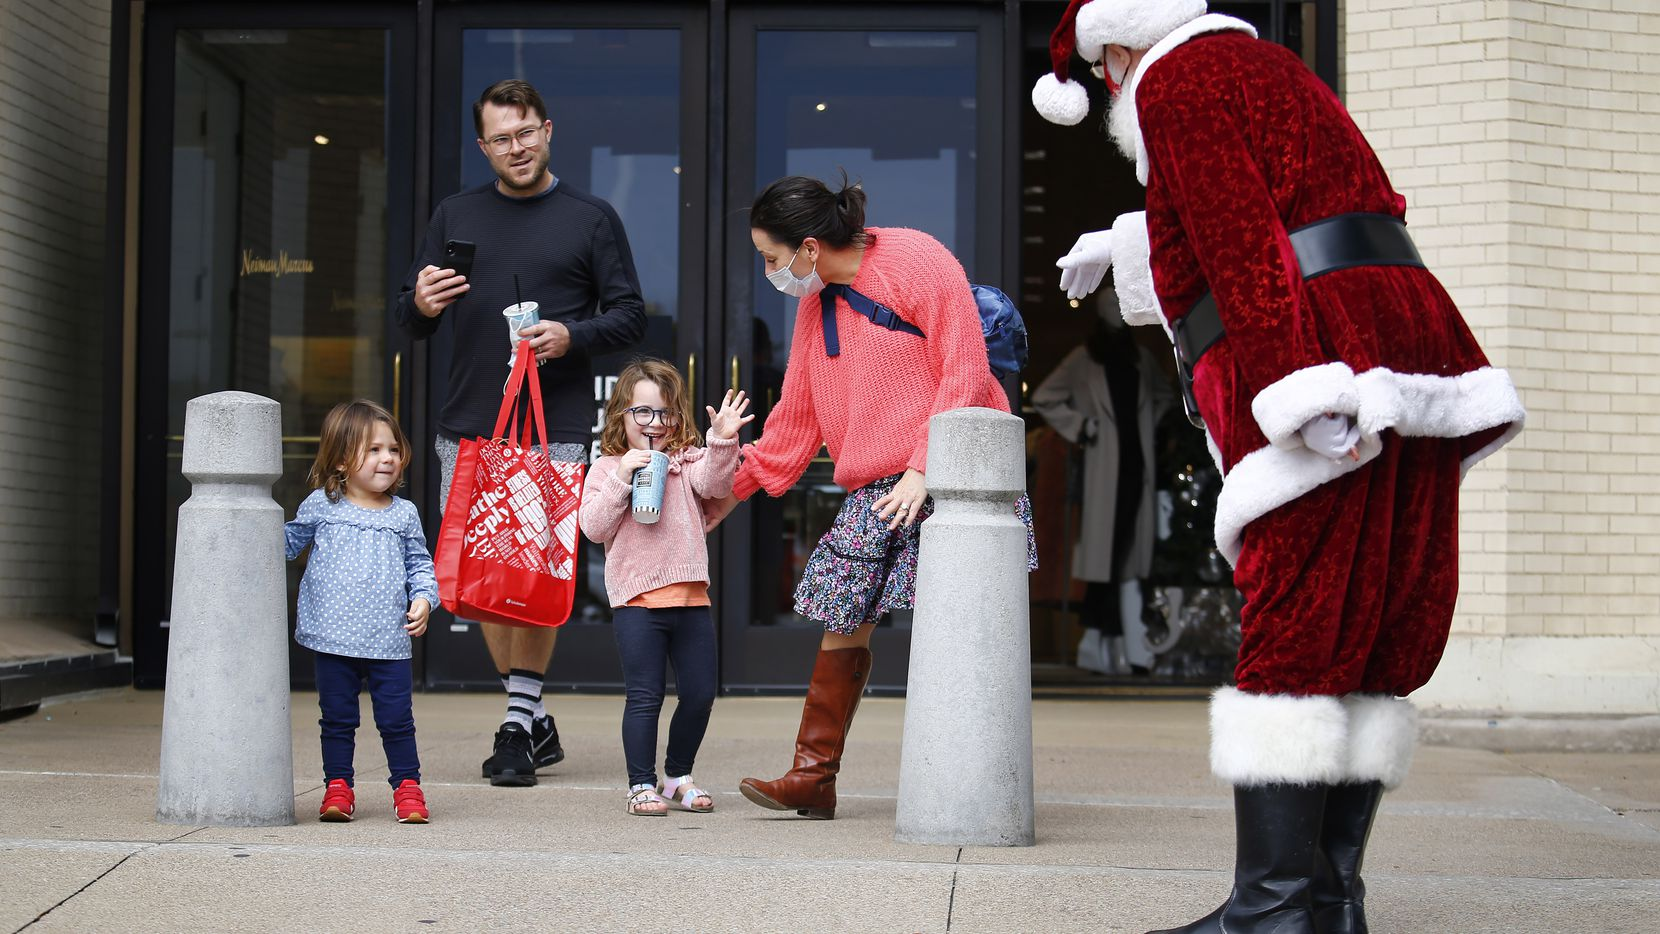 Stella Helt, 4, waves to Santa Claus, aka Mike Davis, as she and her sister, Evie, dad Bob and mom Gayle exit the Neiman Marcus store at NorthPark Center in Dallas, Saturday, November 28, 2020. Despite the COVID-19 pandemic, Santa is maintaining a busy social schedule for the holiday season, with scheduled appearances in Irving and throughout North Texas.